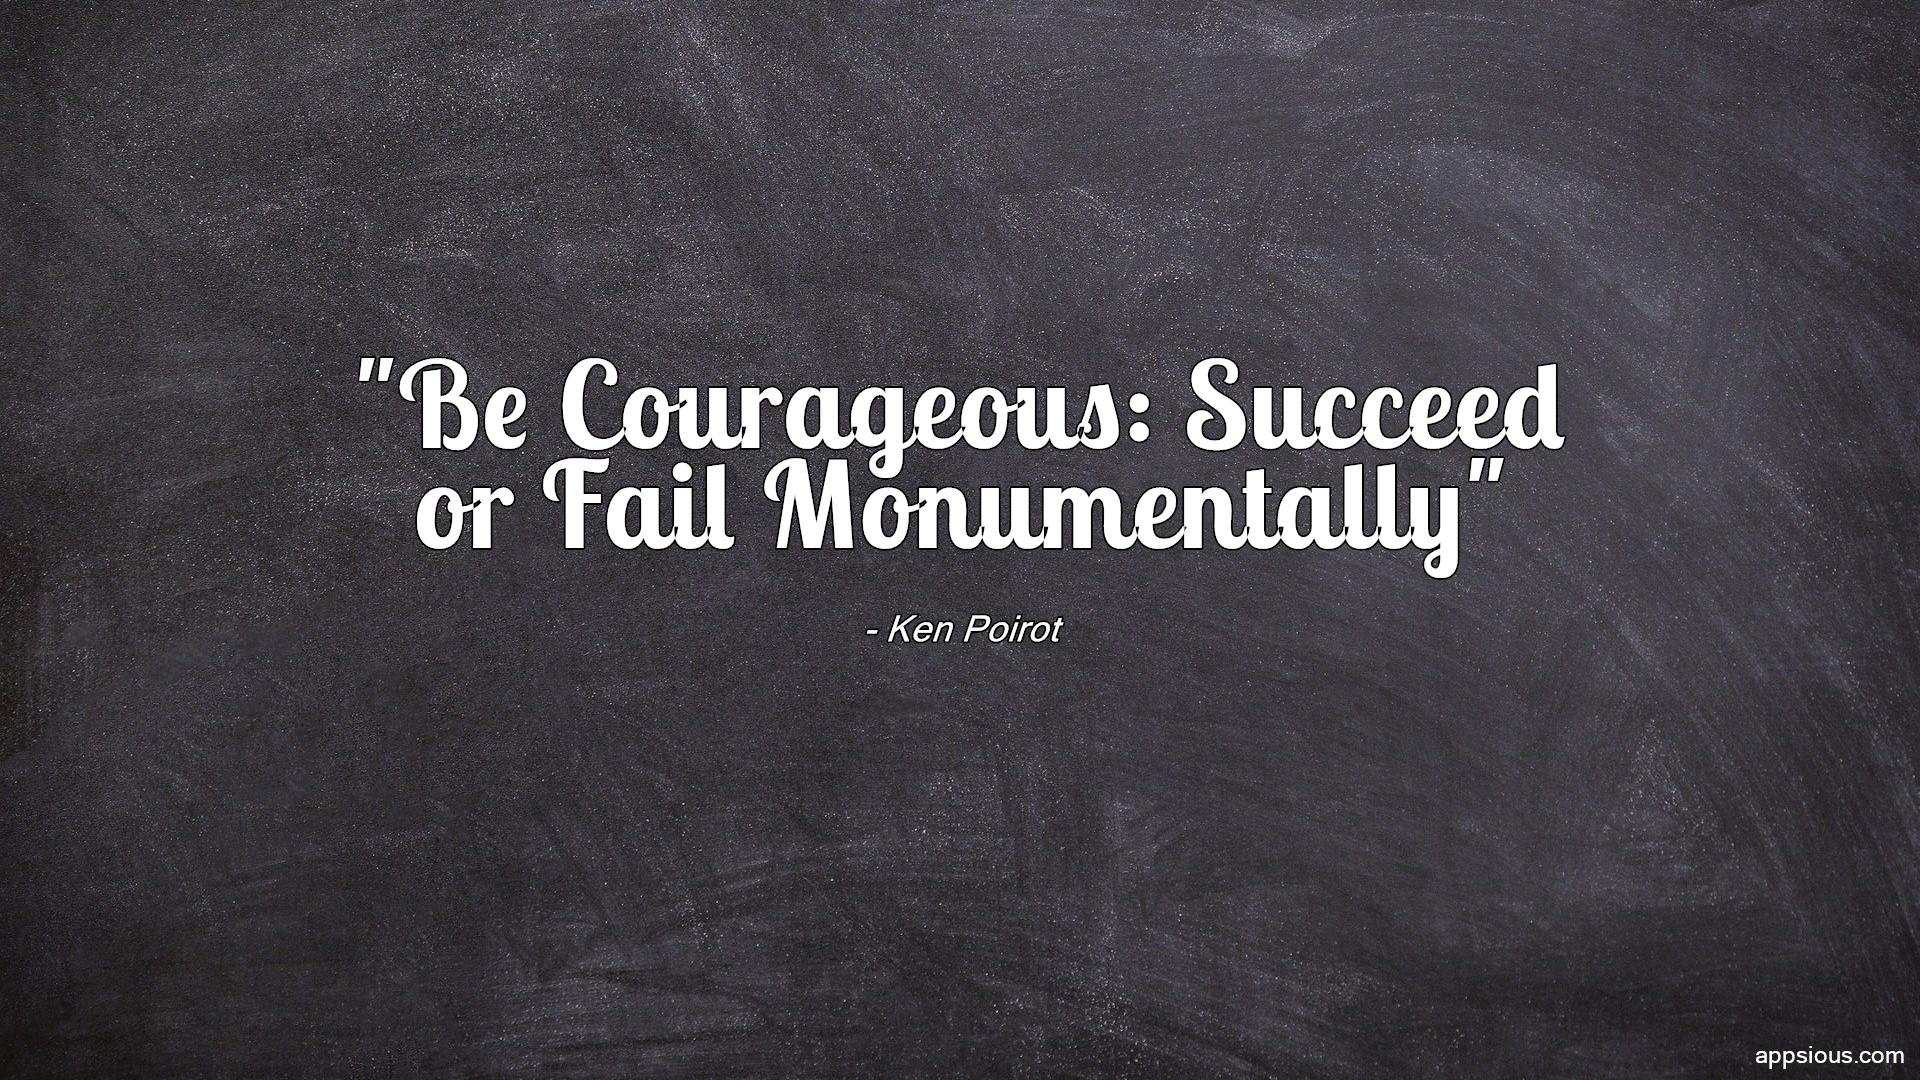 Be Courageous: Succeed or Fail Monumentally